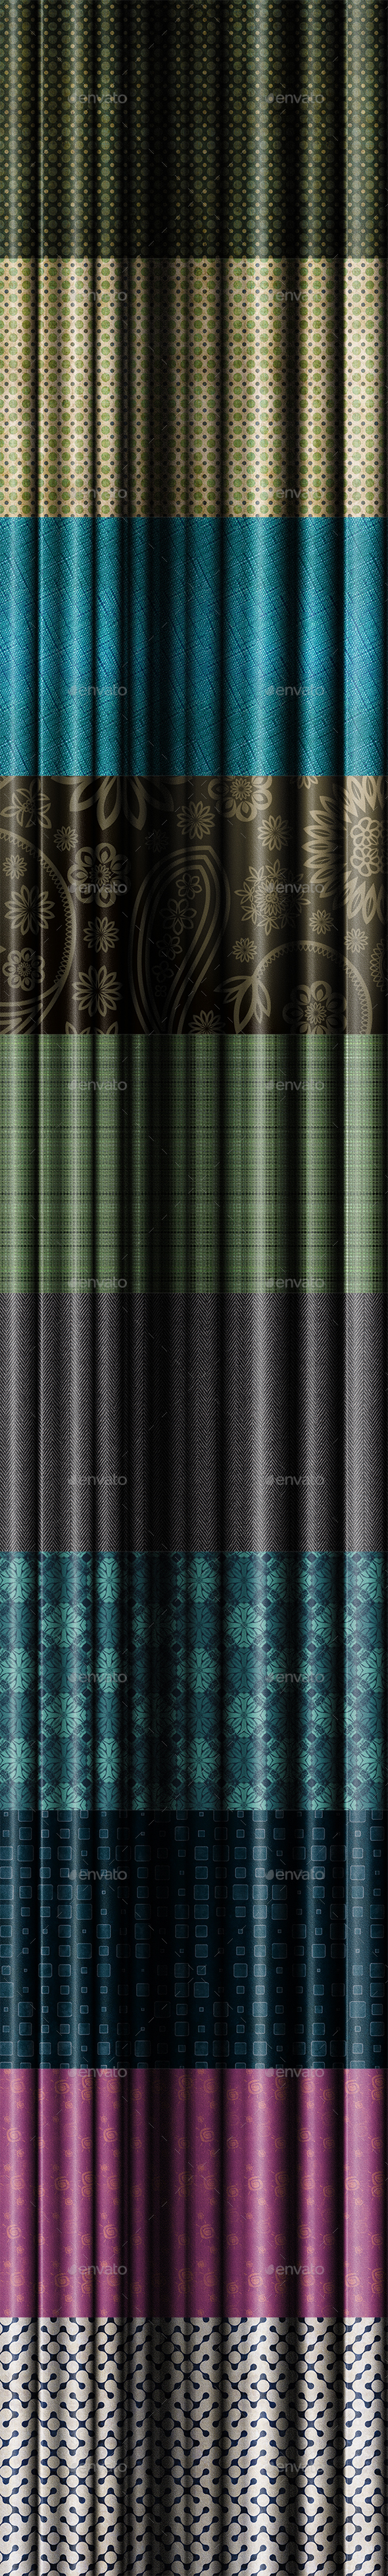 10 Fabric Backgrounds - Abstract Backgrounds